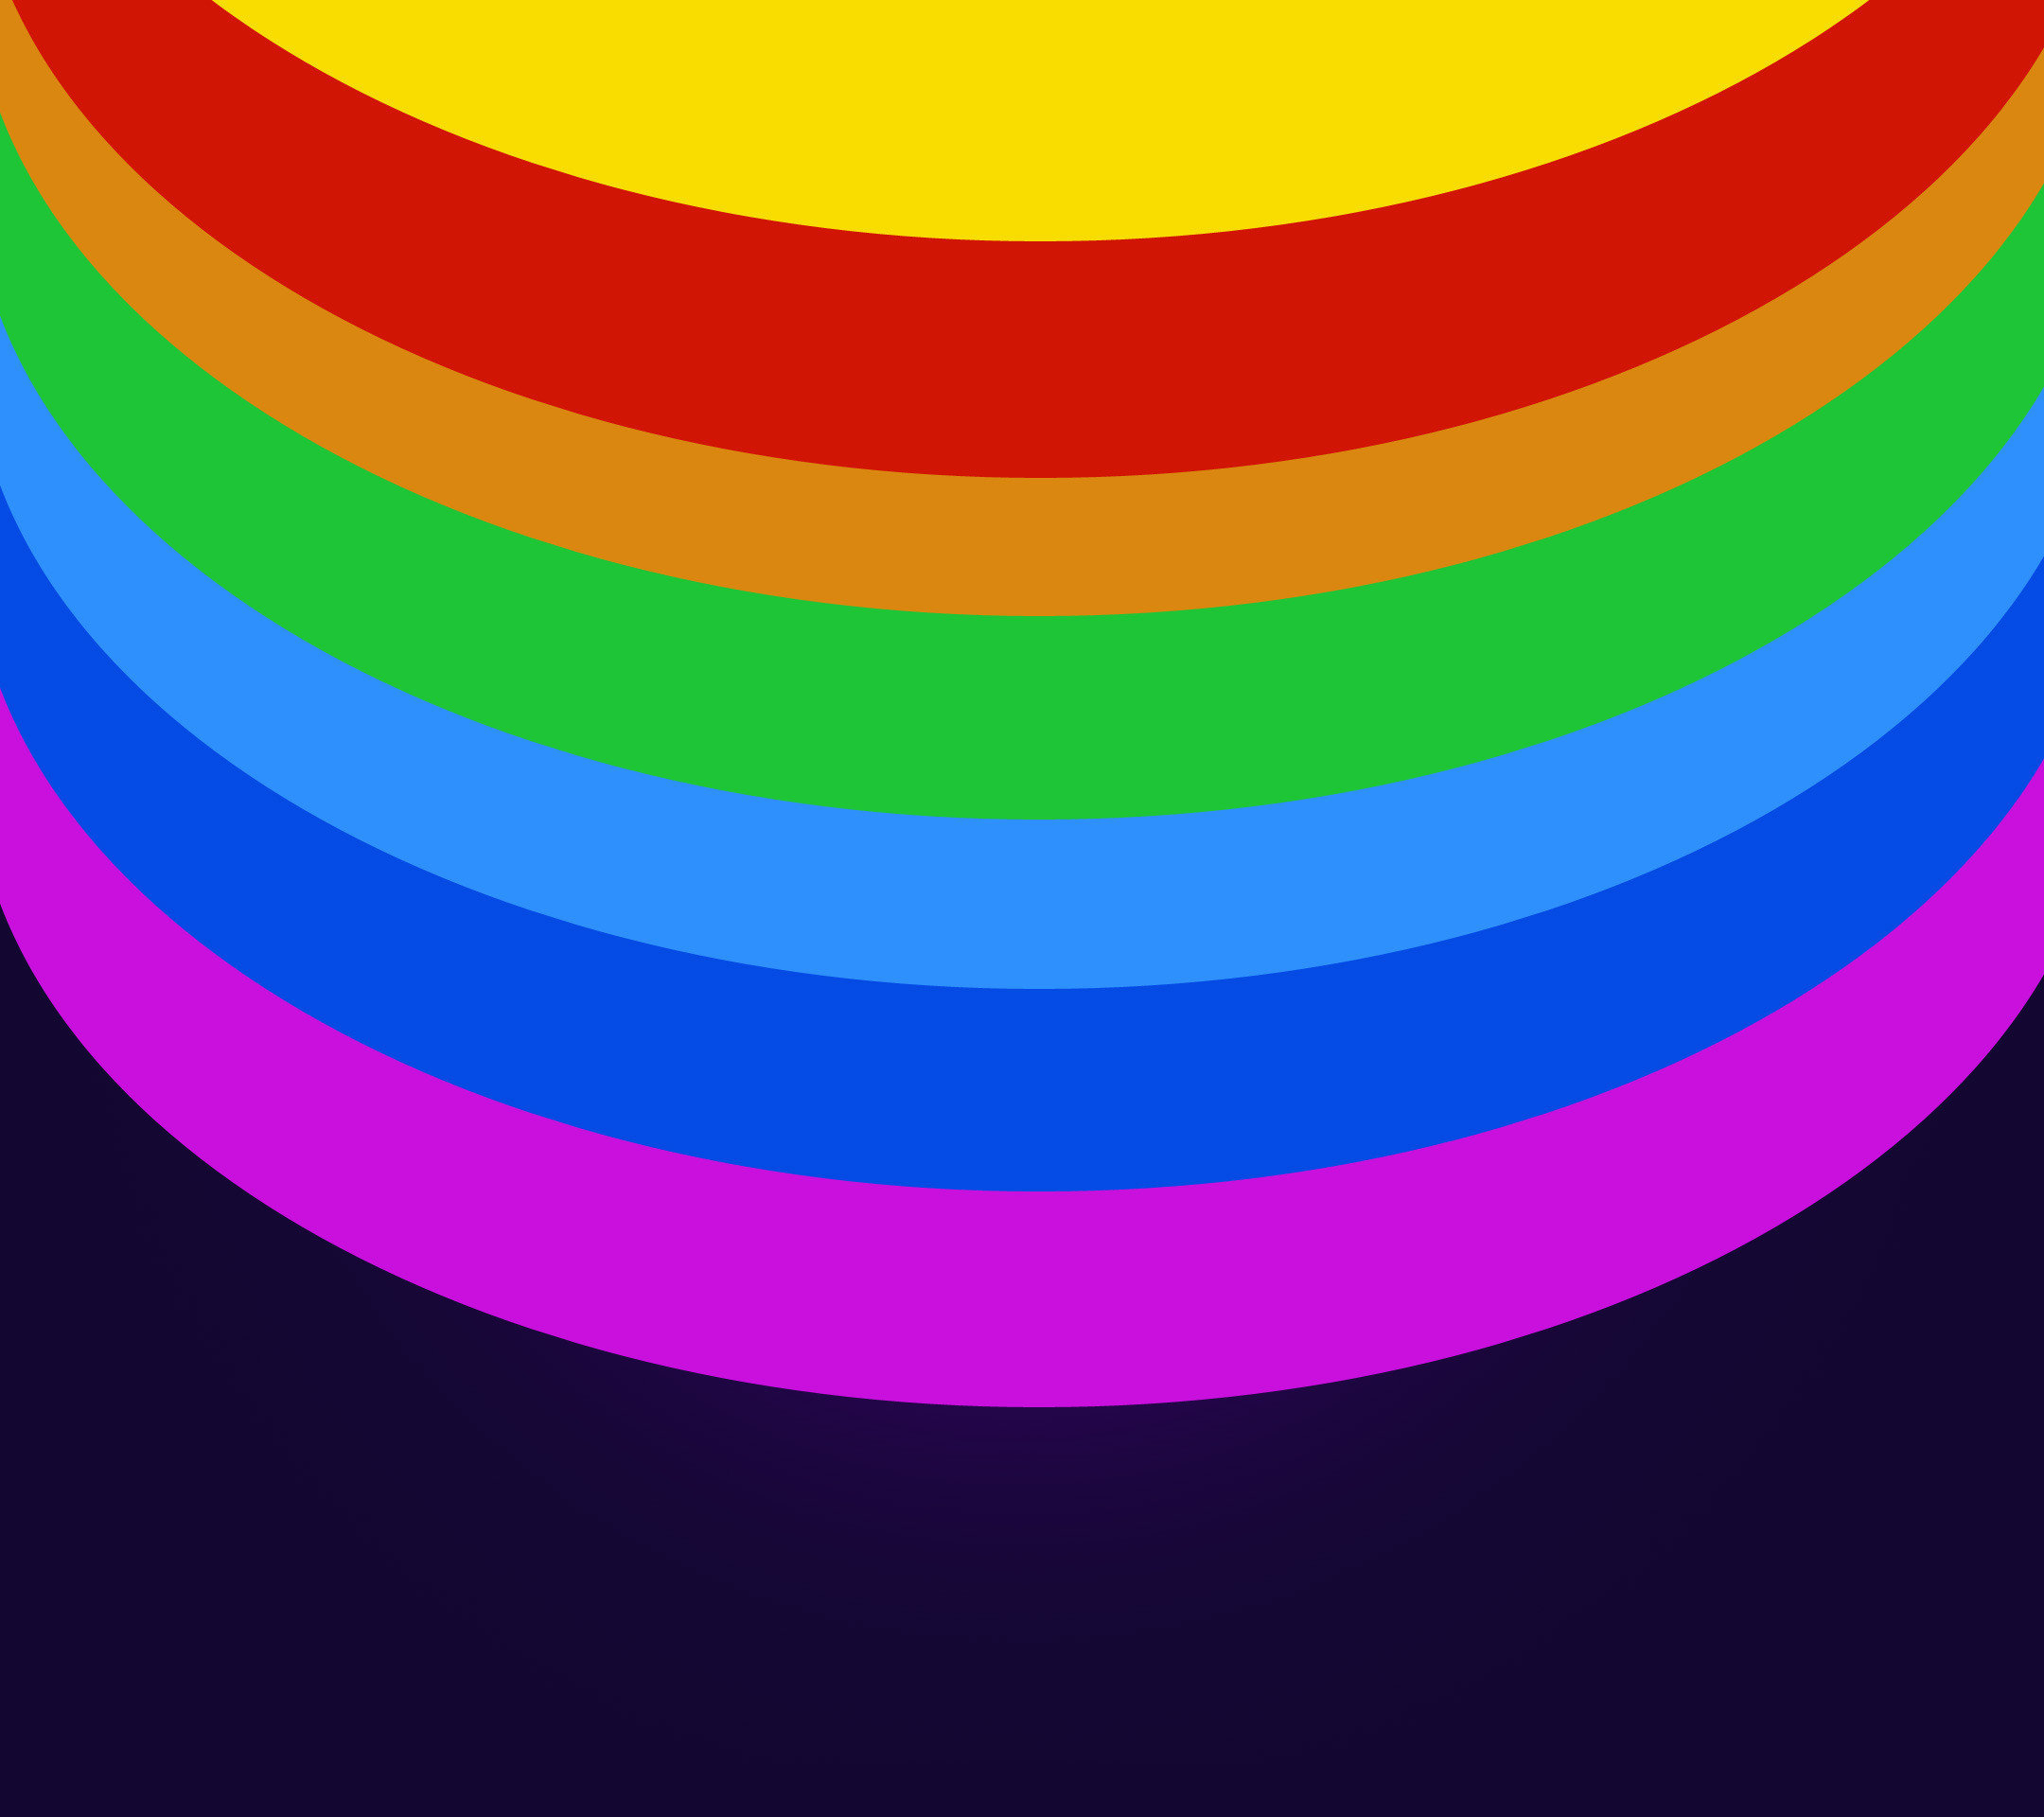 2160x1920 Rainbow colored circles Wallpaper